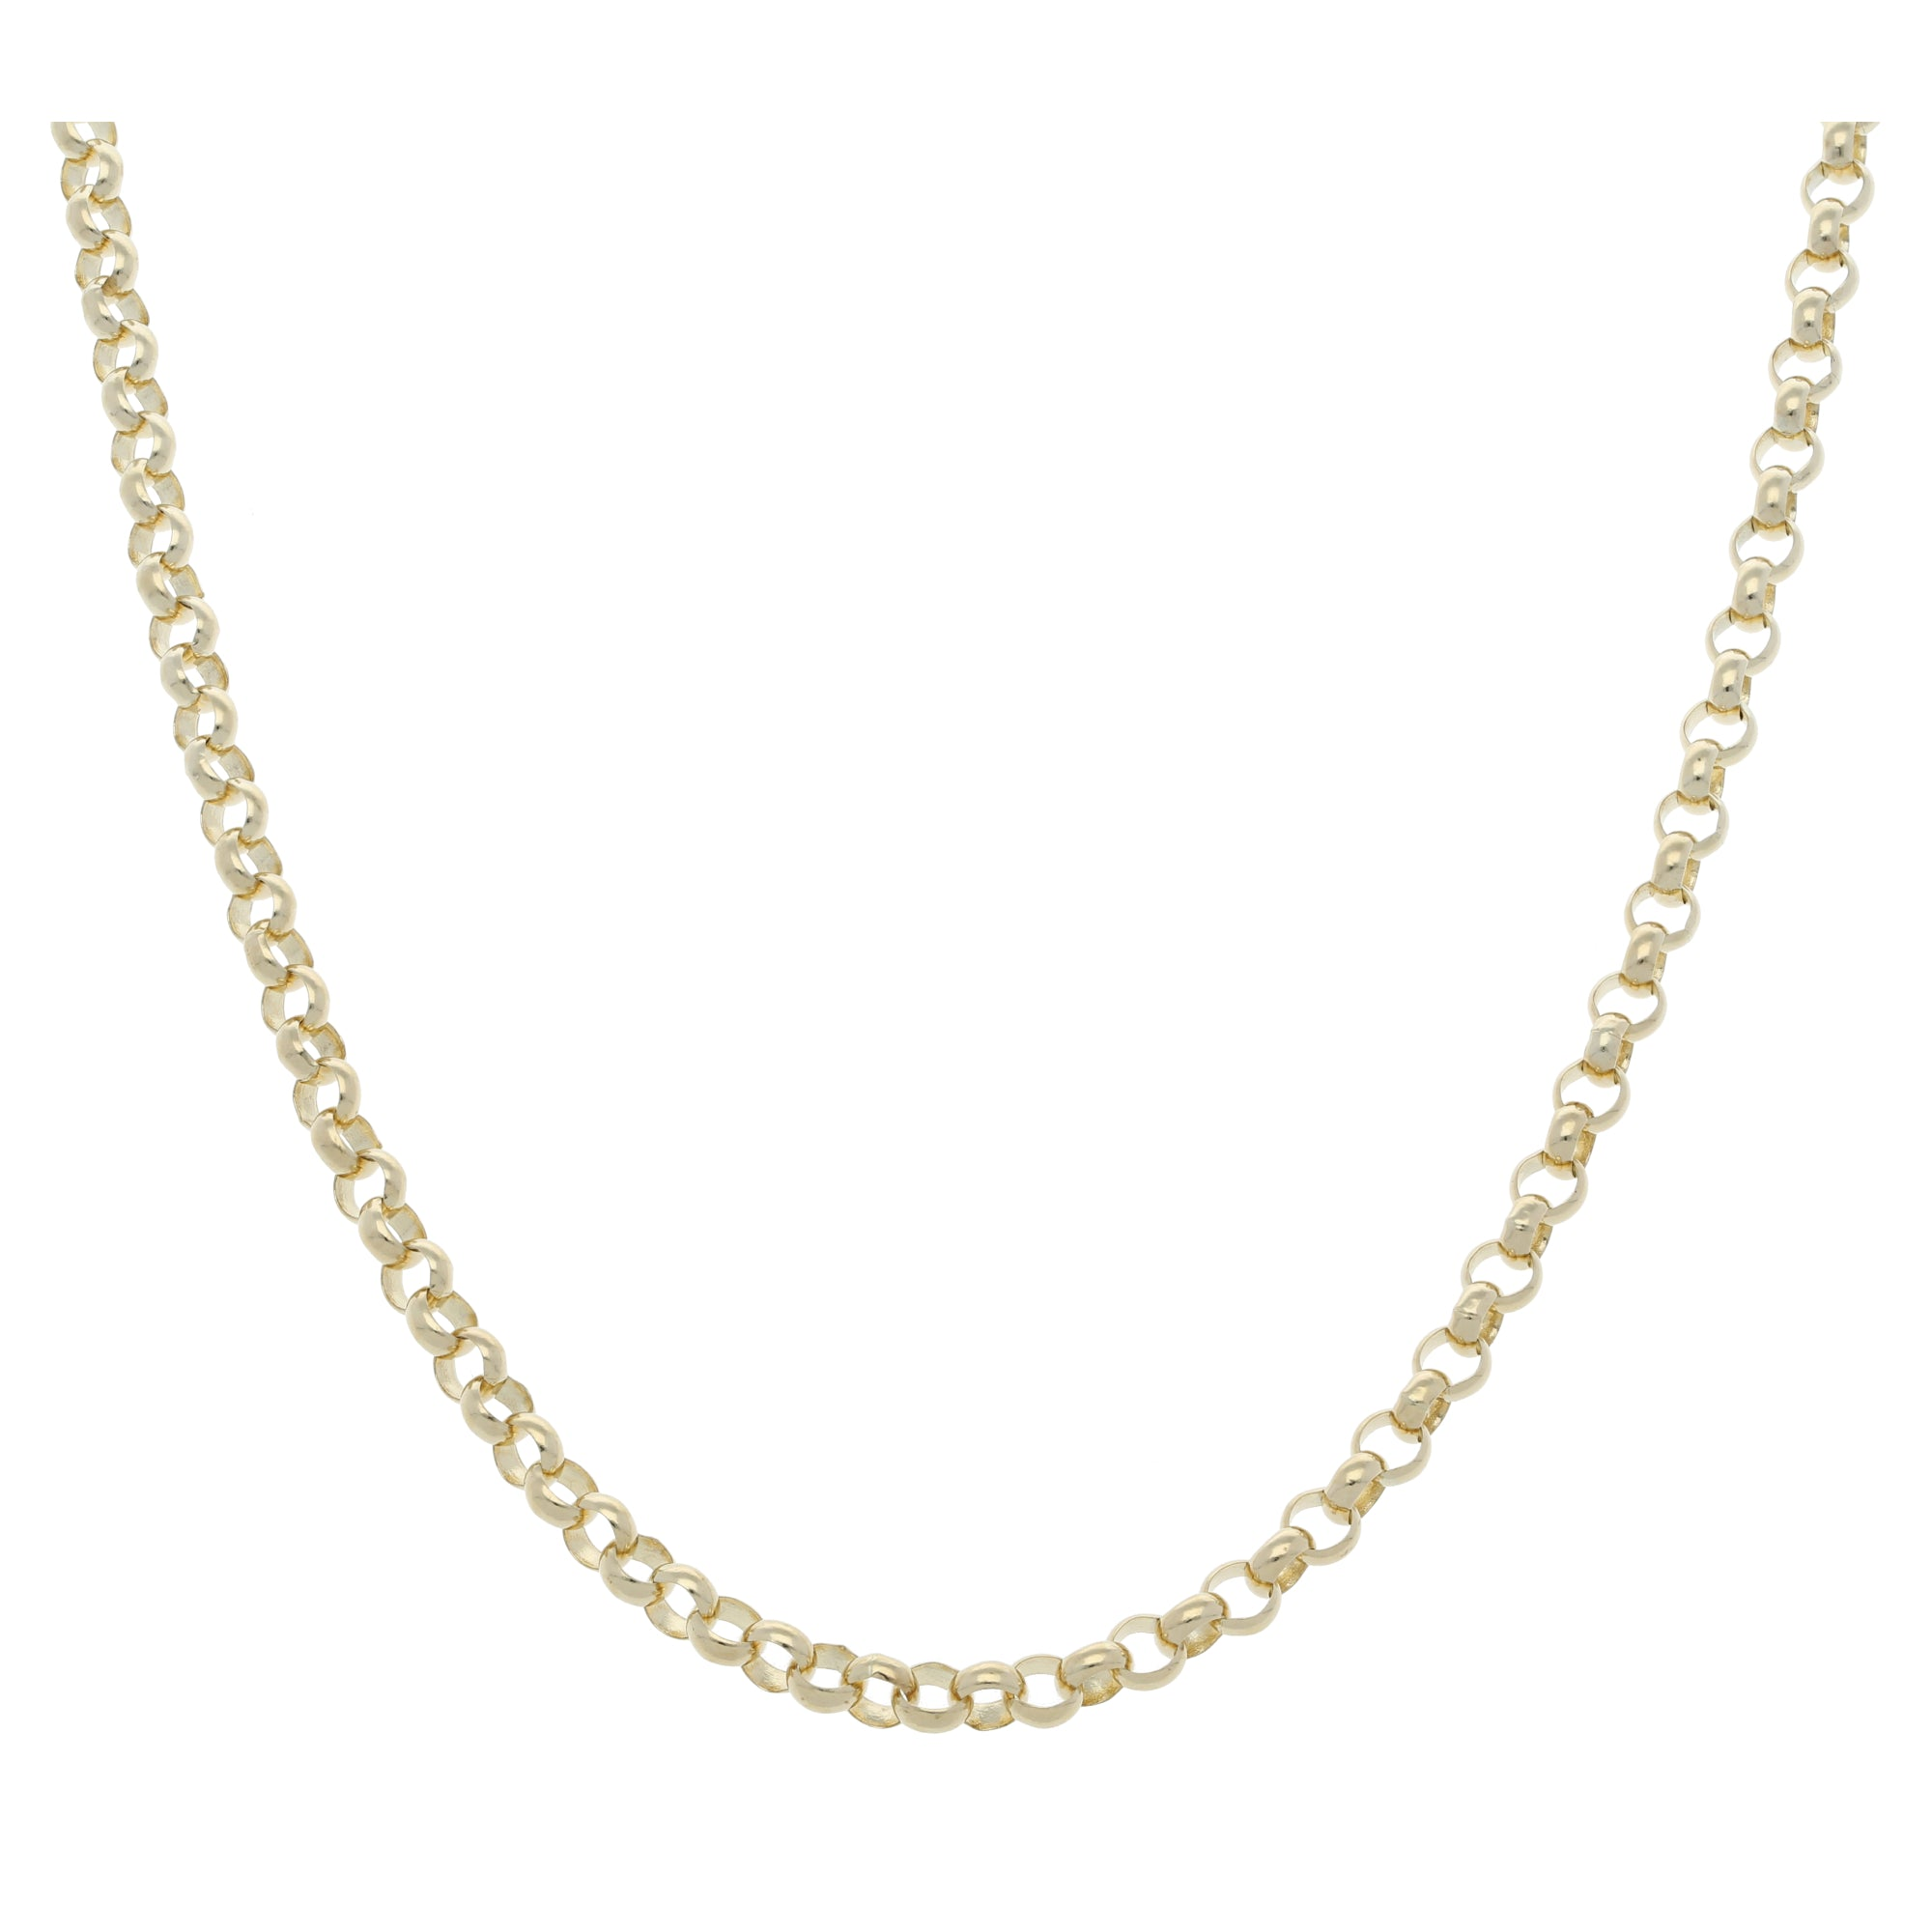 9ct Gold Ladies Belcher Chain 24